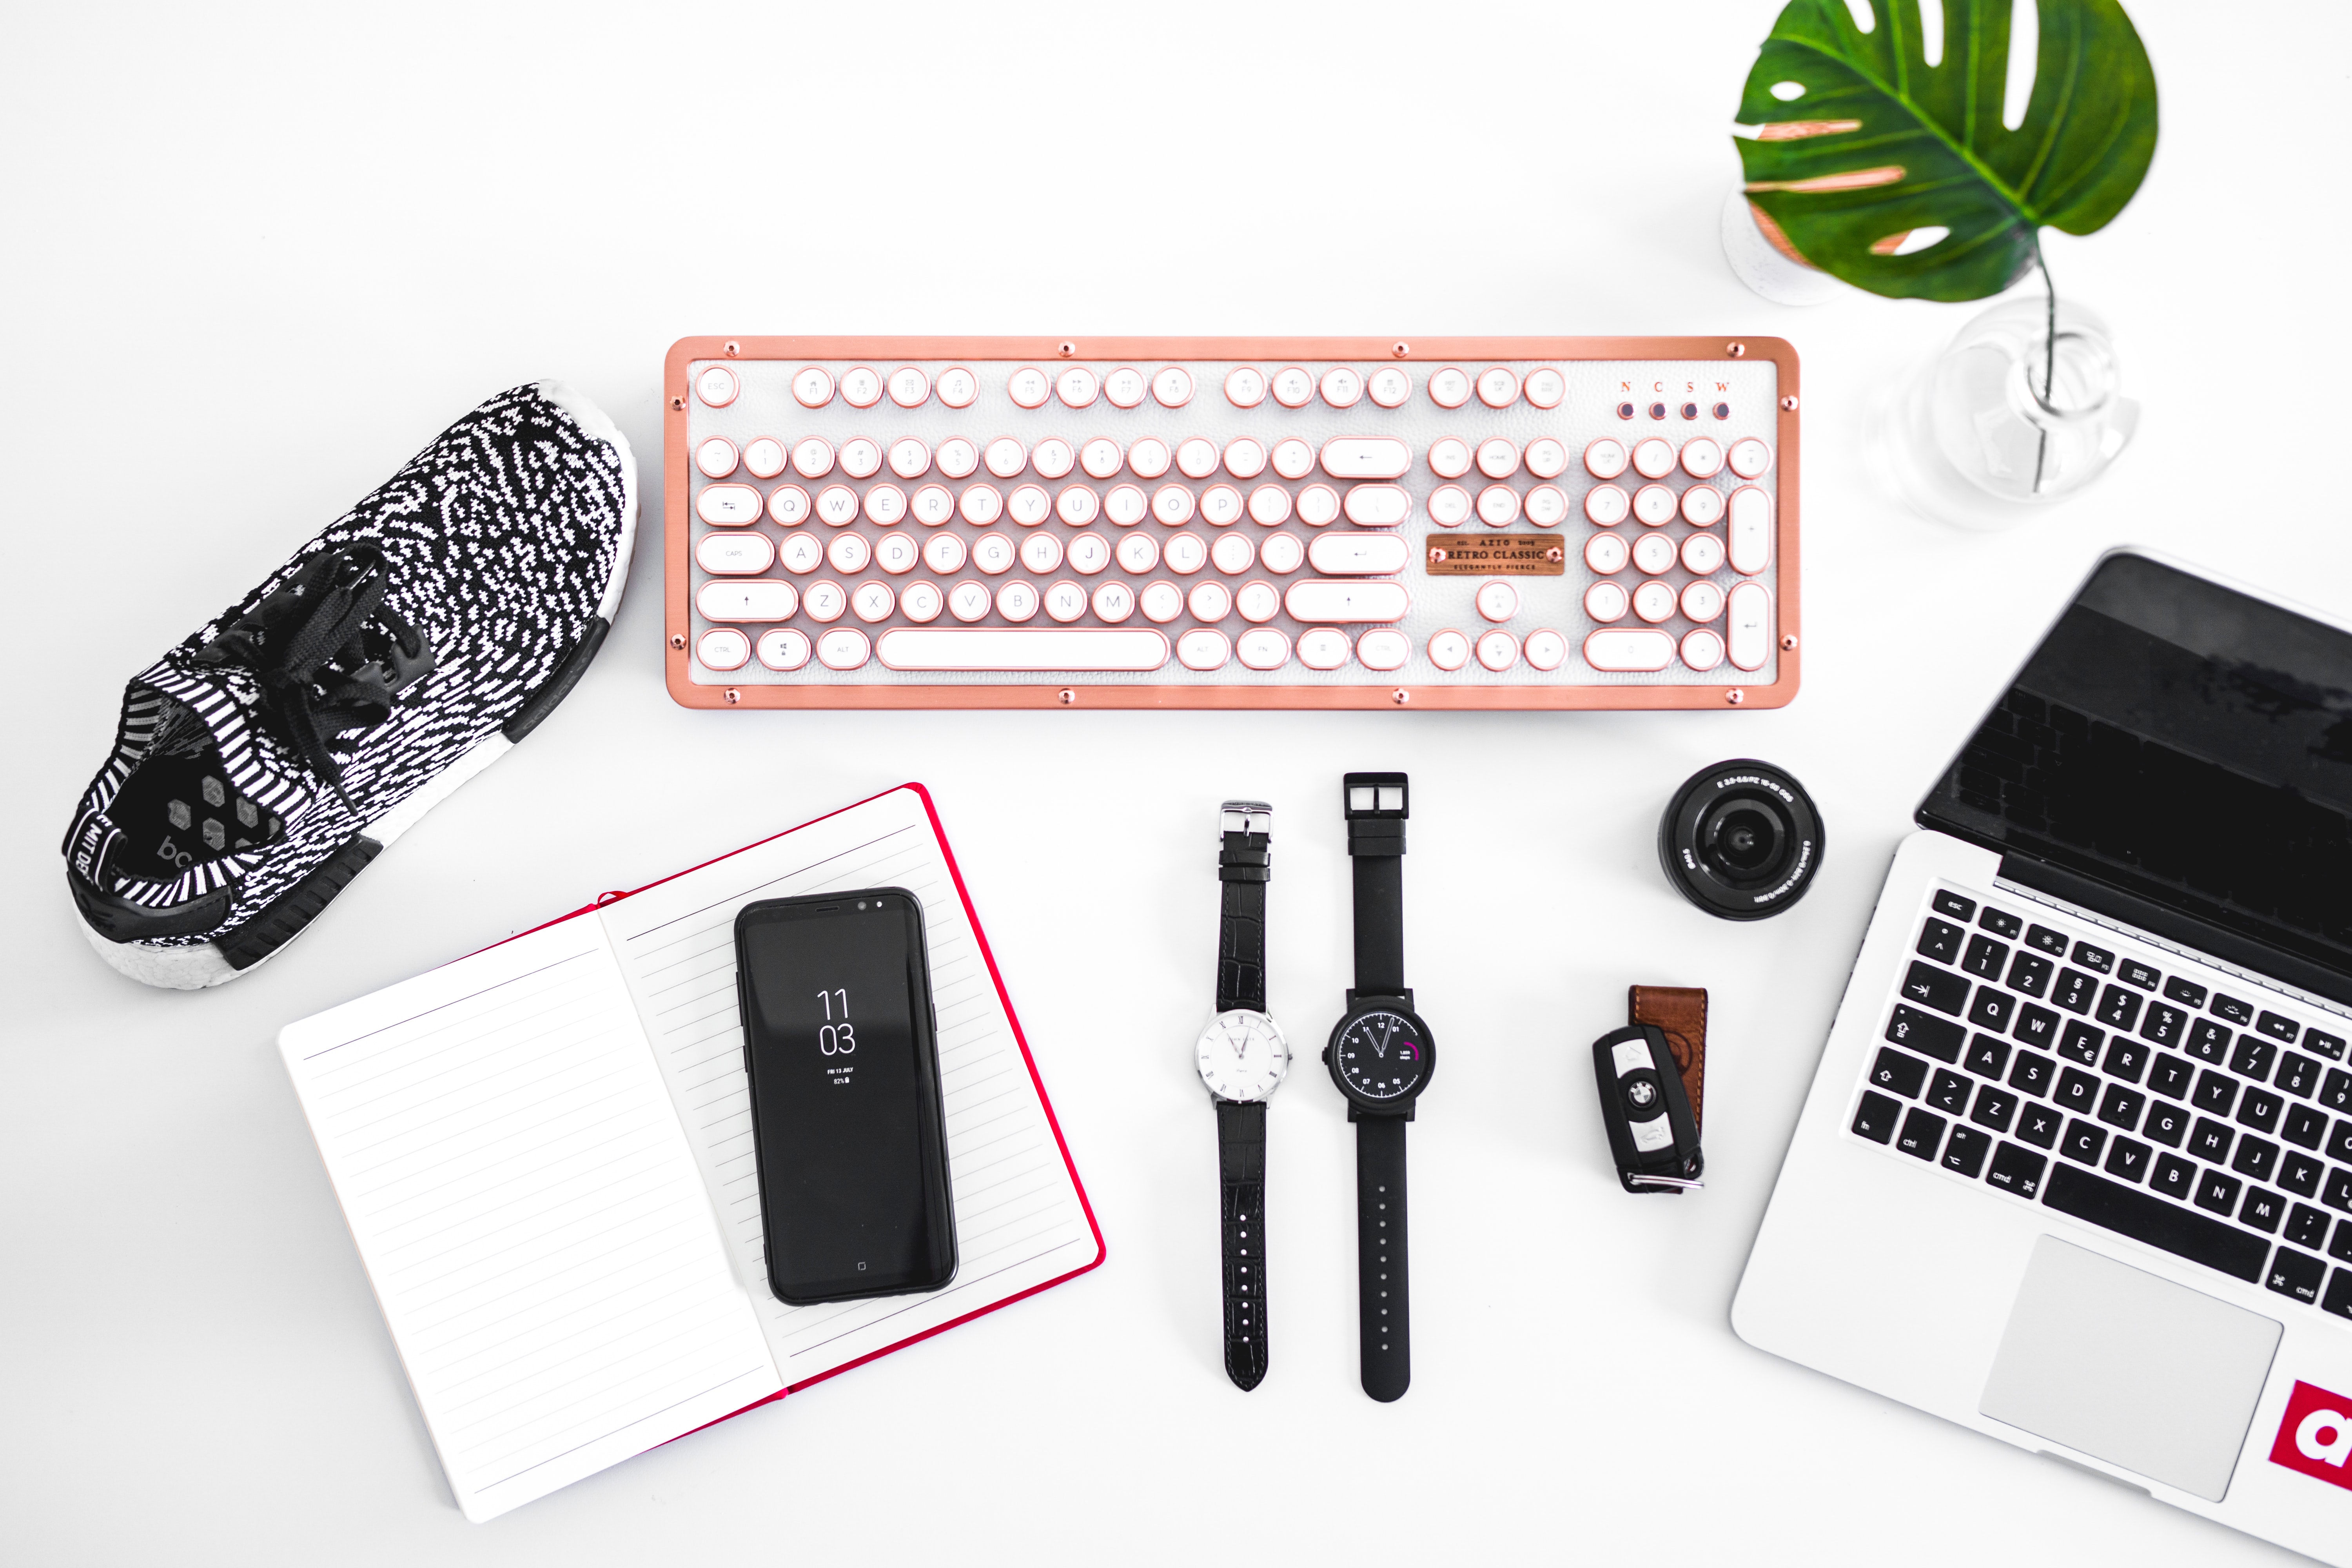 laptop computer beside analog watches on table